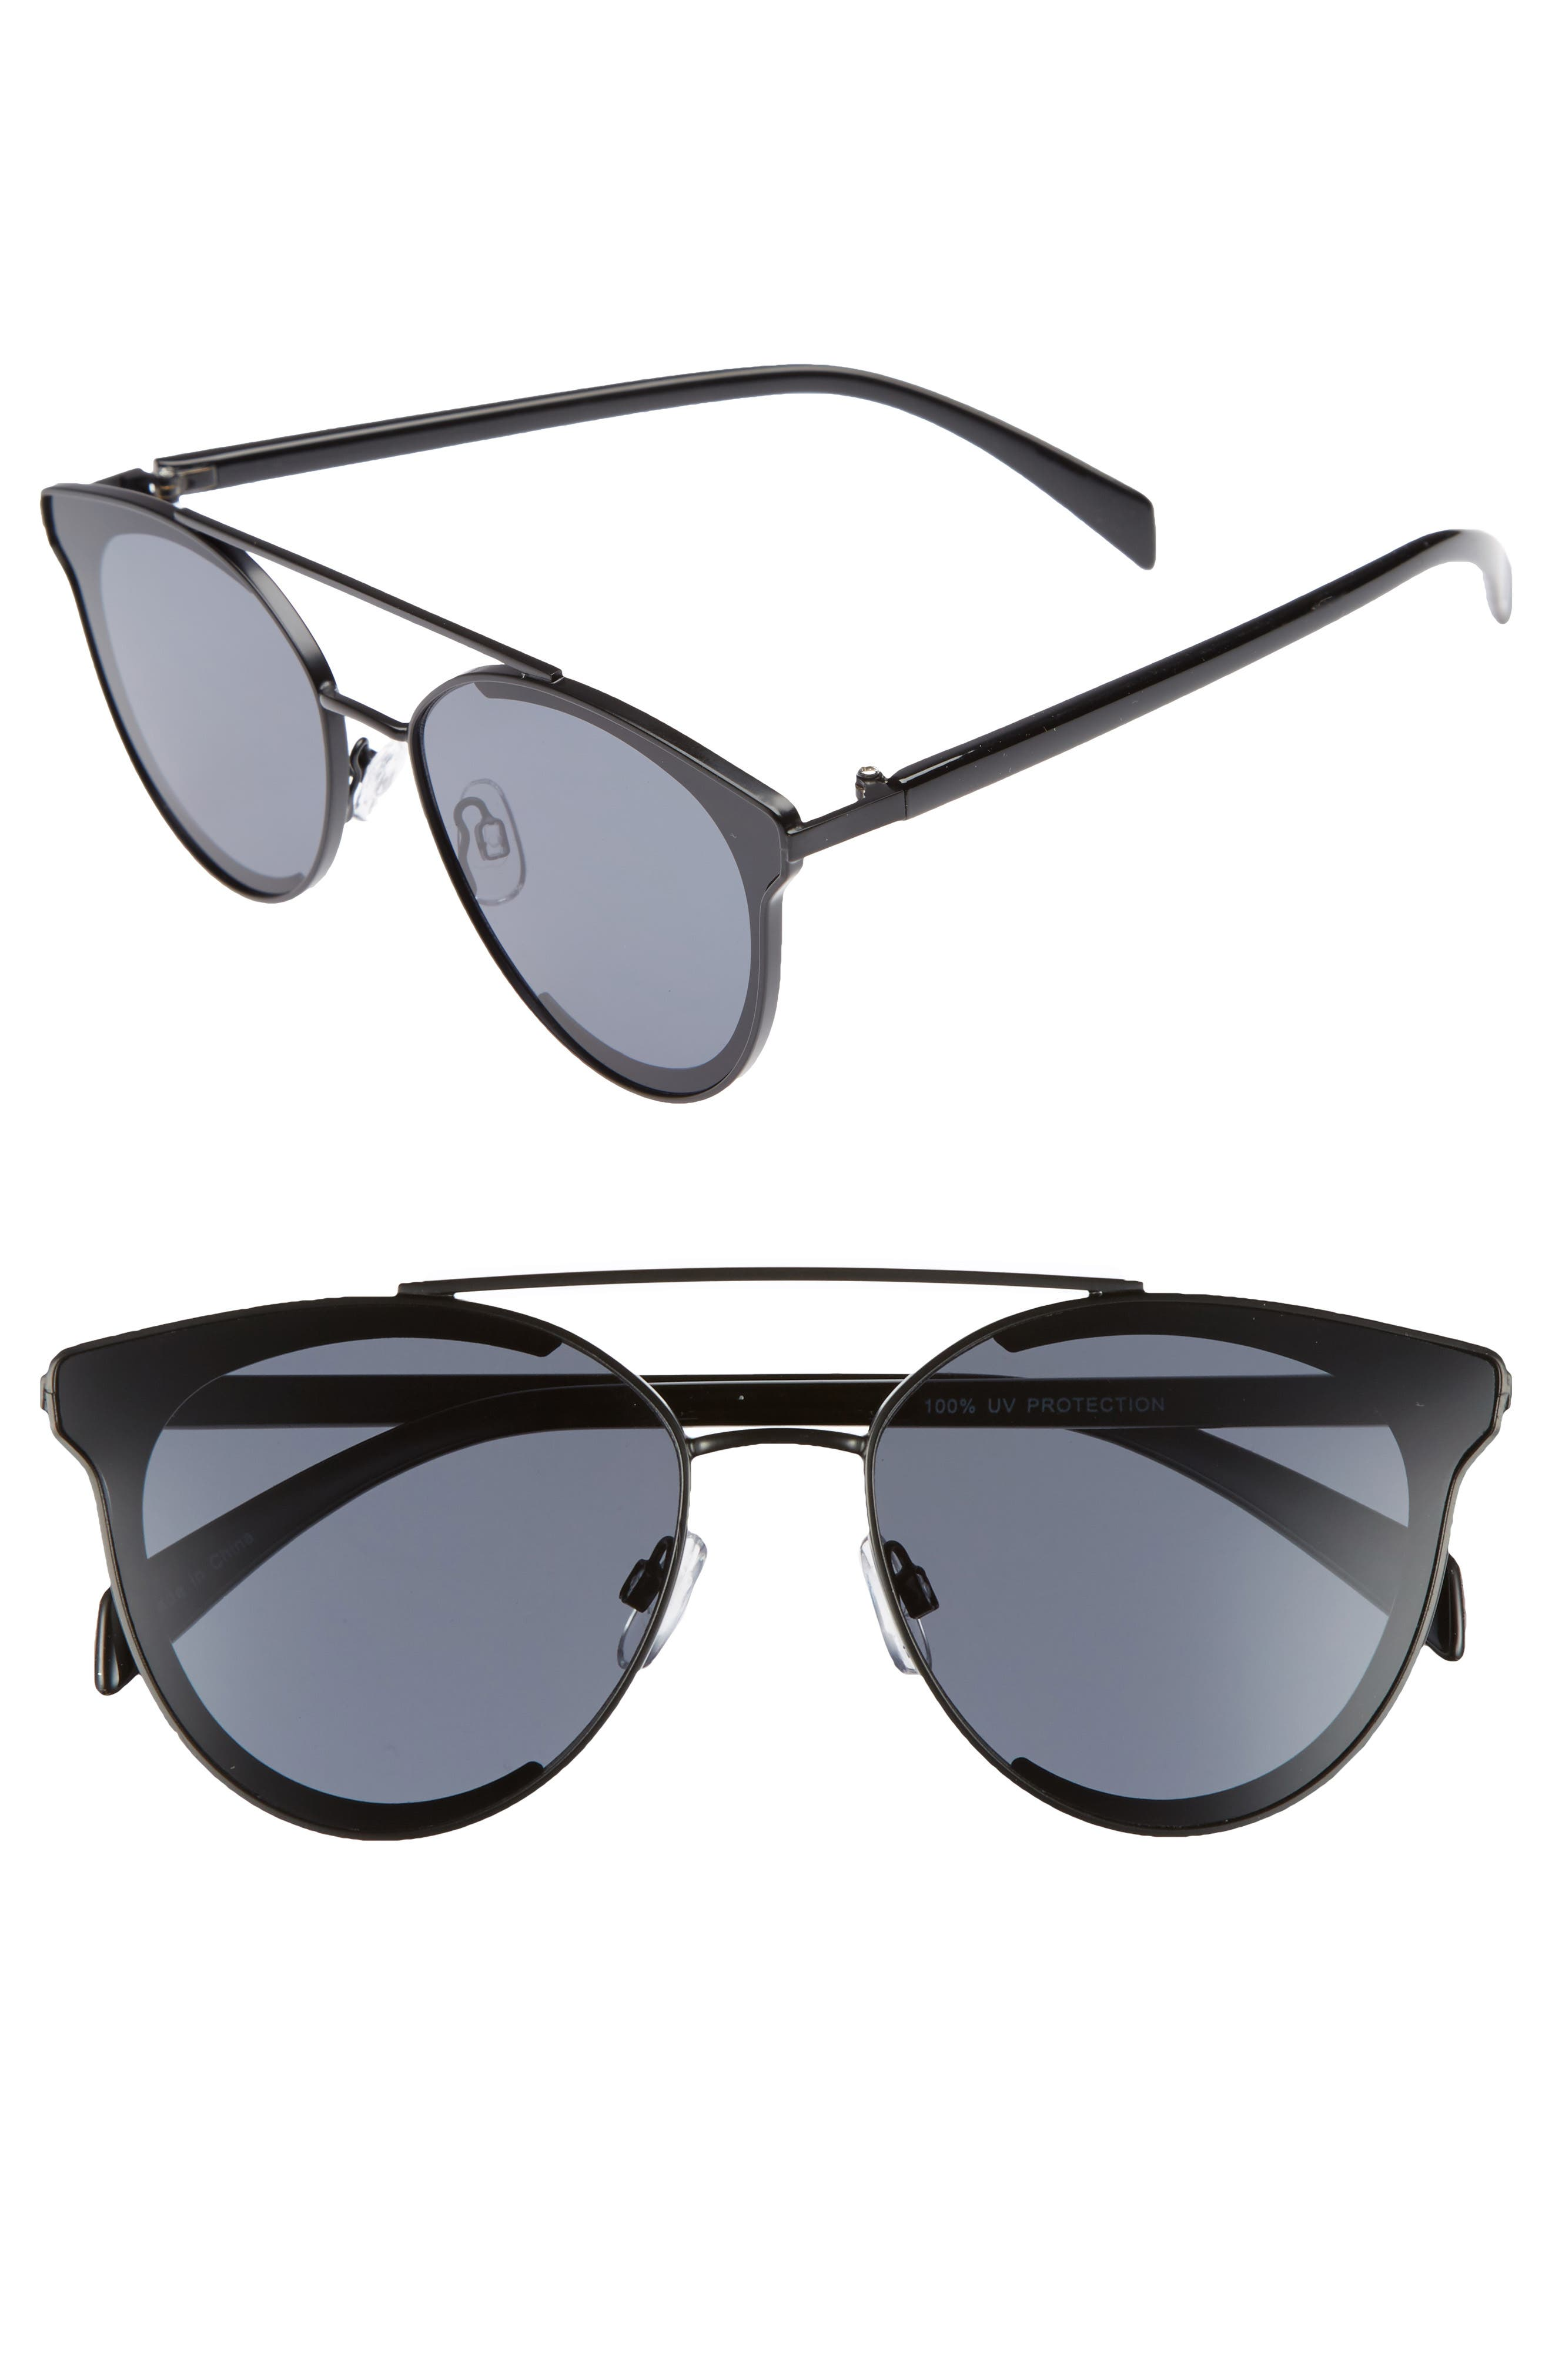 58mm Aviator Sunglasses,                         Main,                         color, Black/ Black